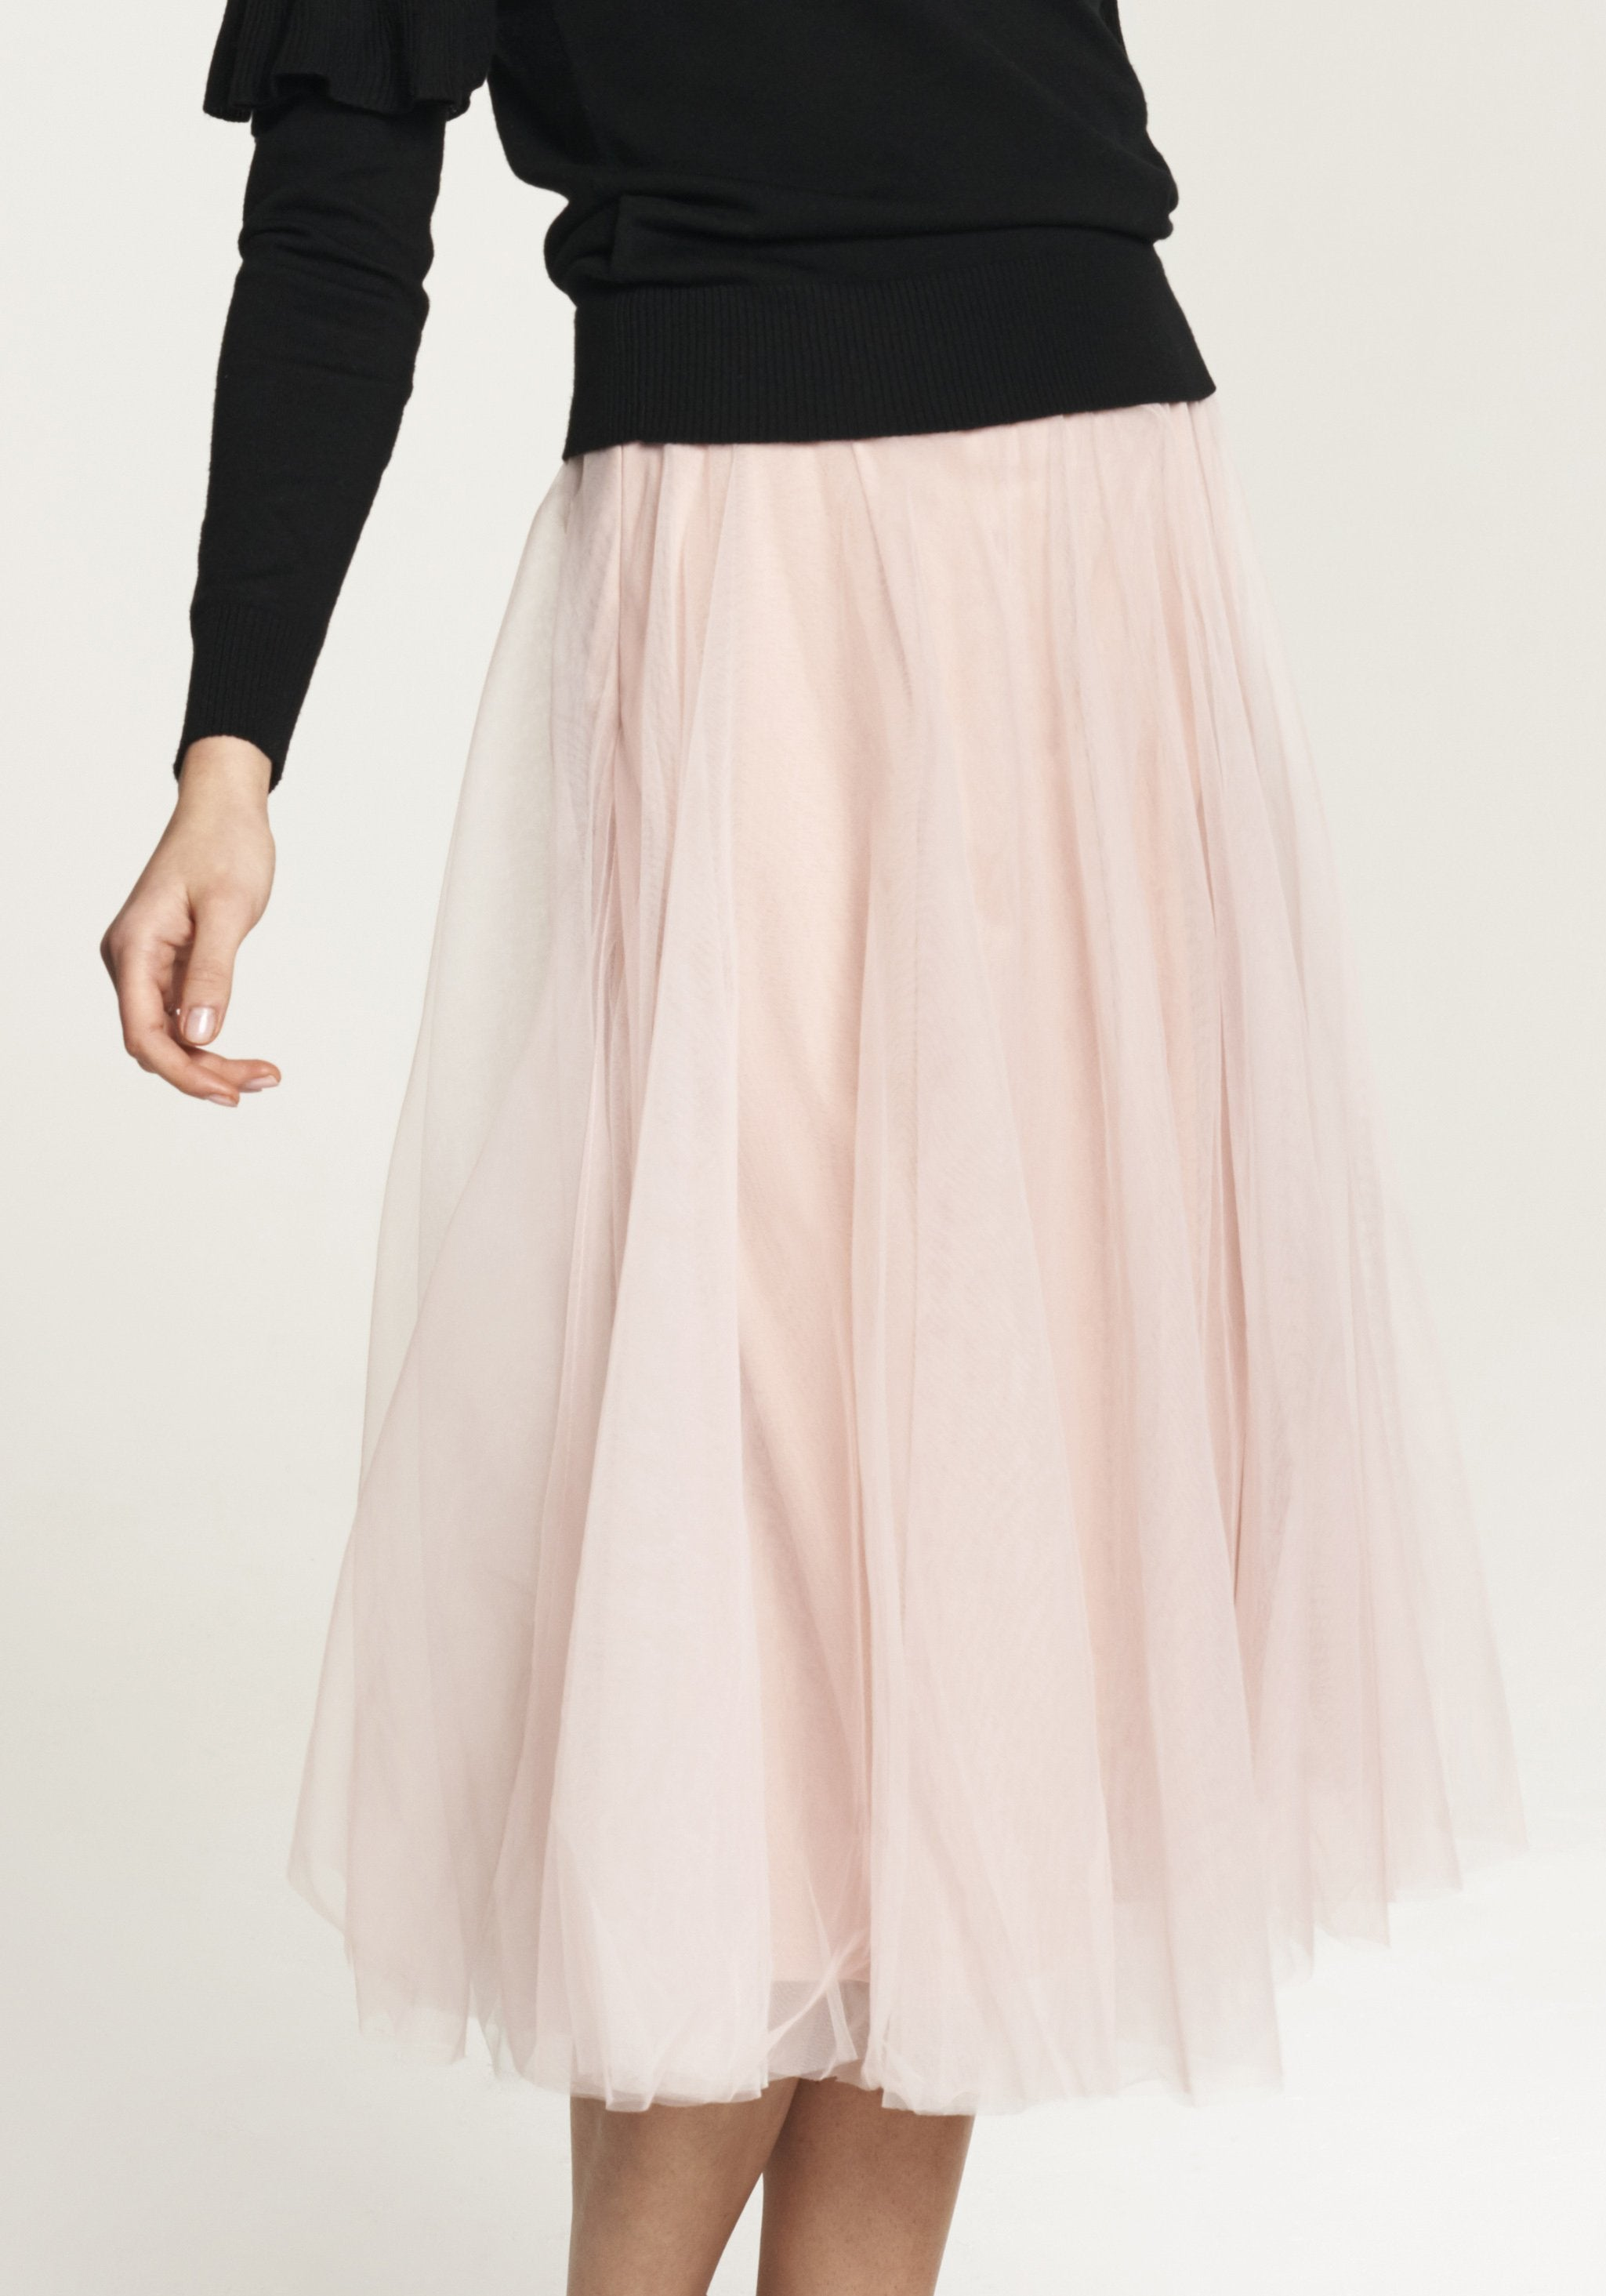 Midi Skirt with Satin Waistband and Tulle Overlay in Blush